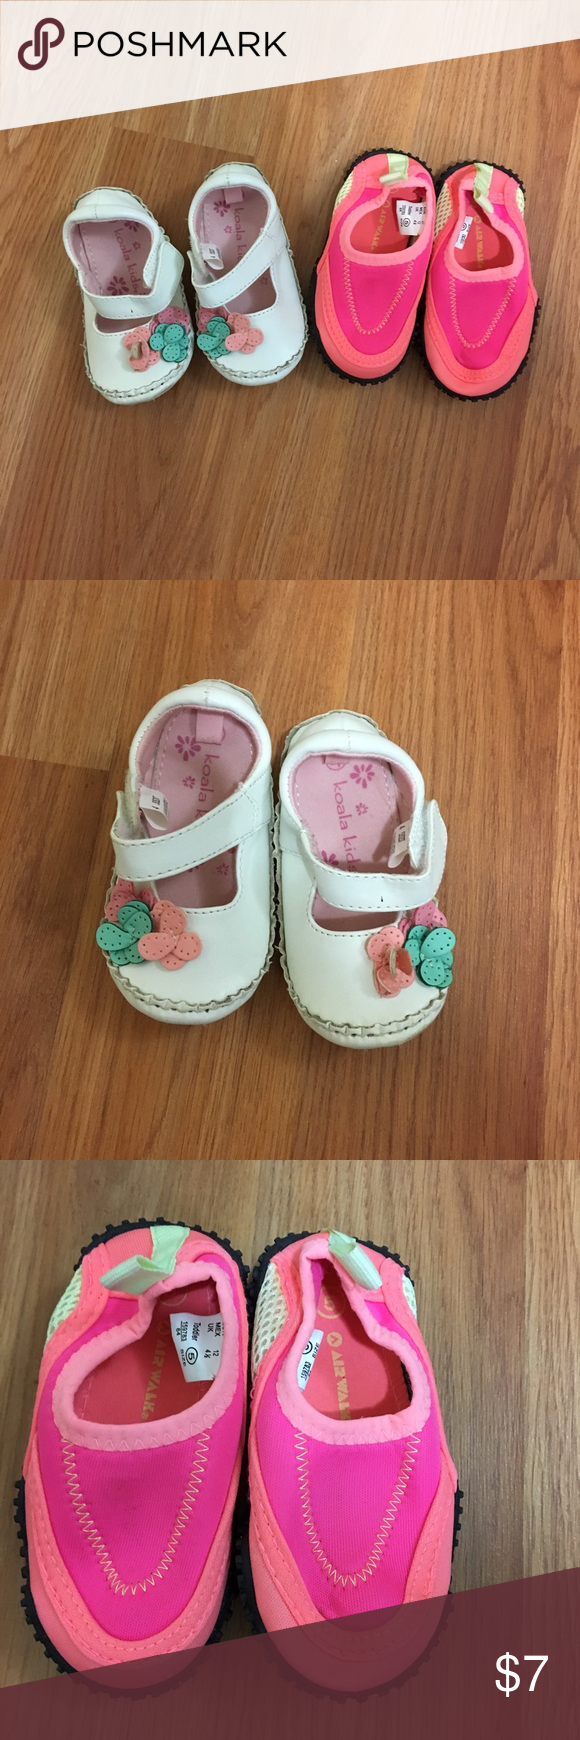 5ef2d902a22f Girls toddler shoes This girls toddler shoes sold together. On is from  koala kids cute